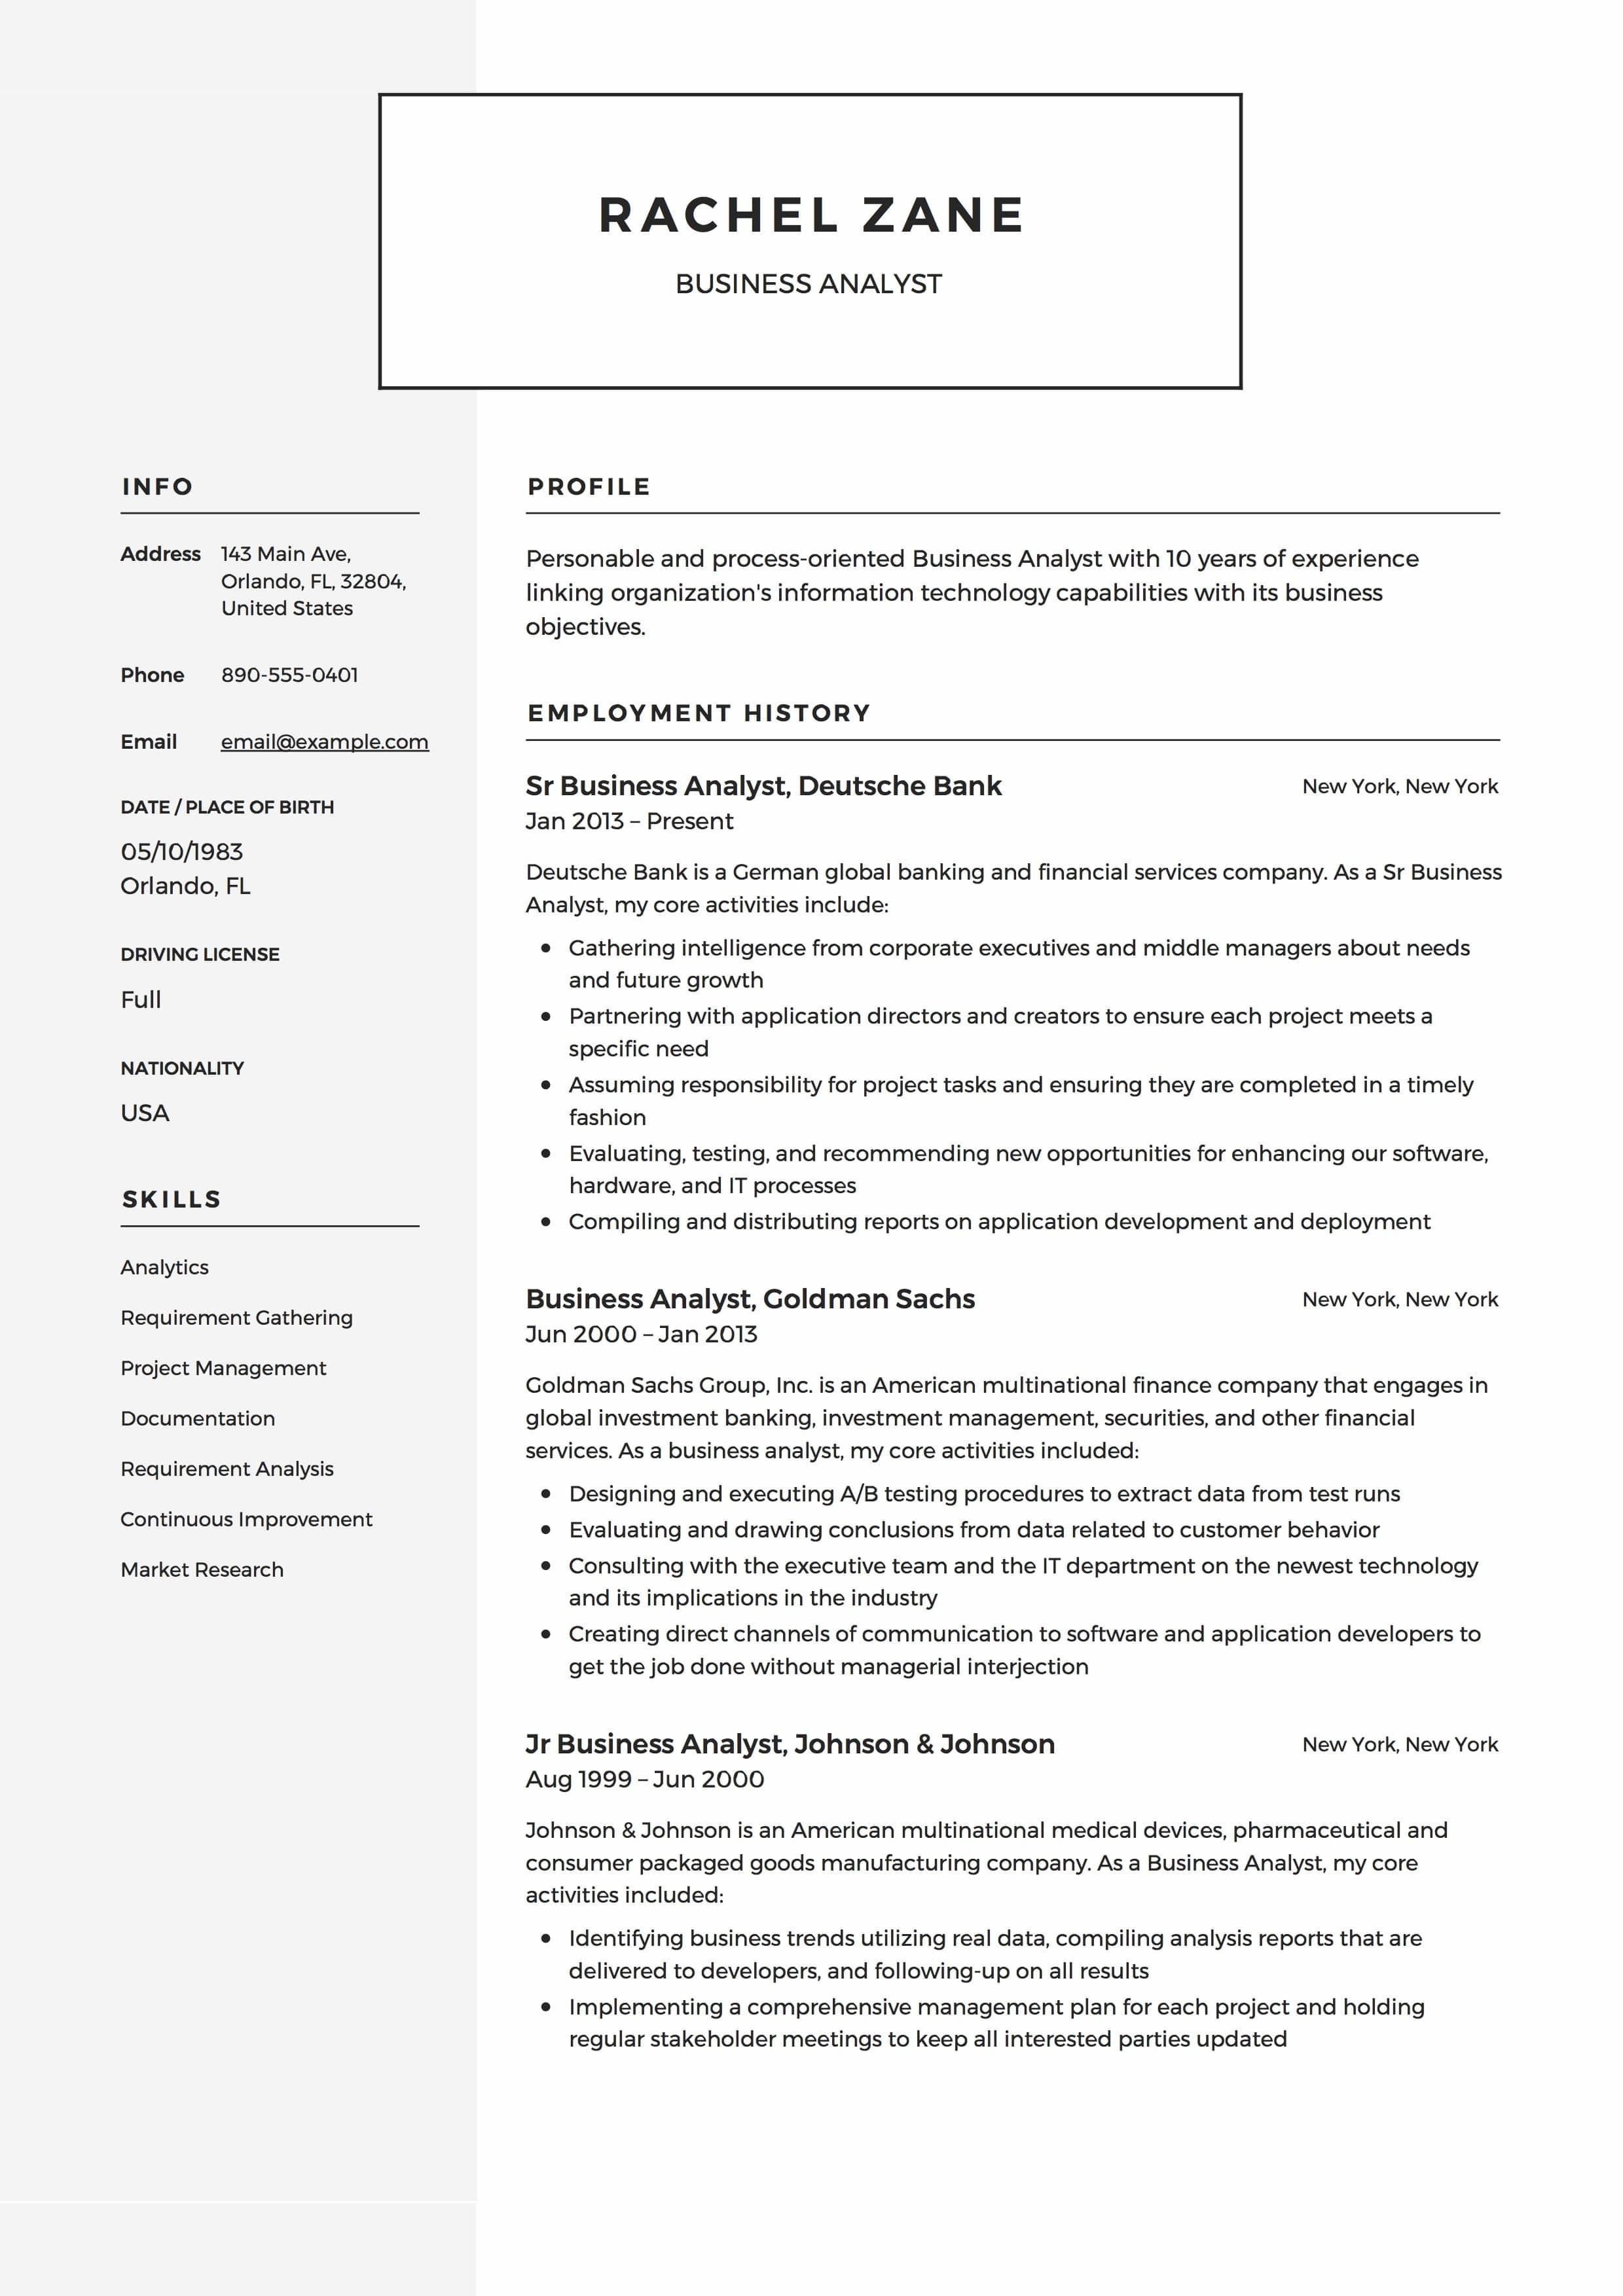 46 Inspirational Business Analyst Resume Examples 2018 by Pictures